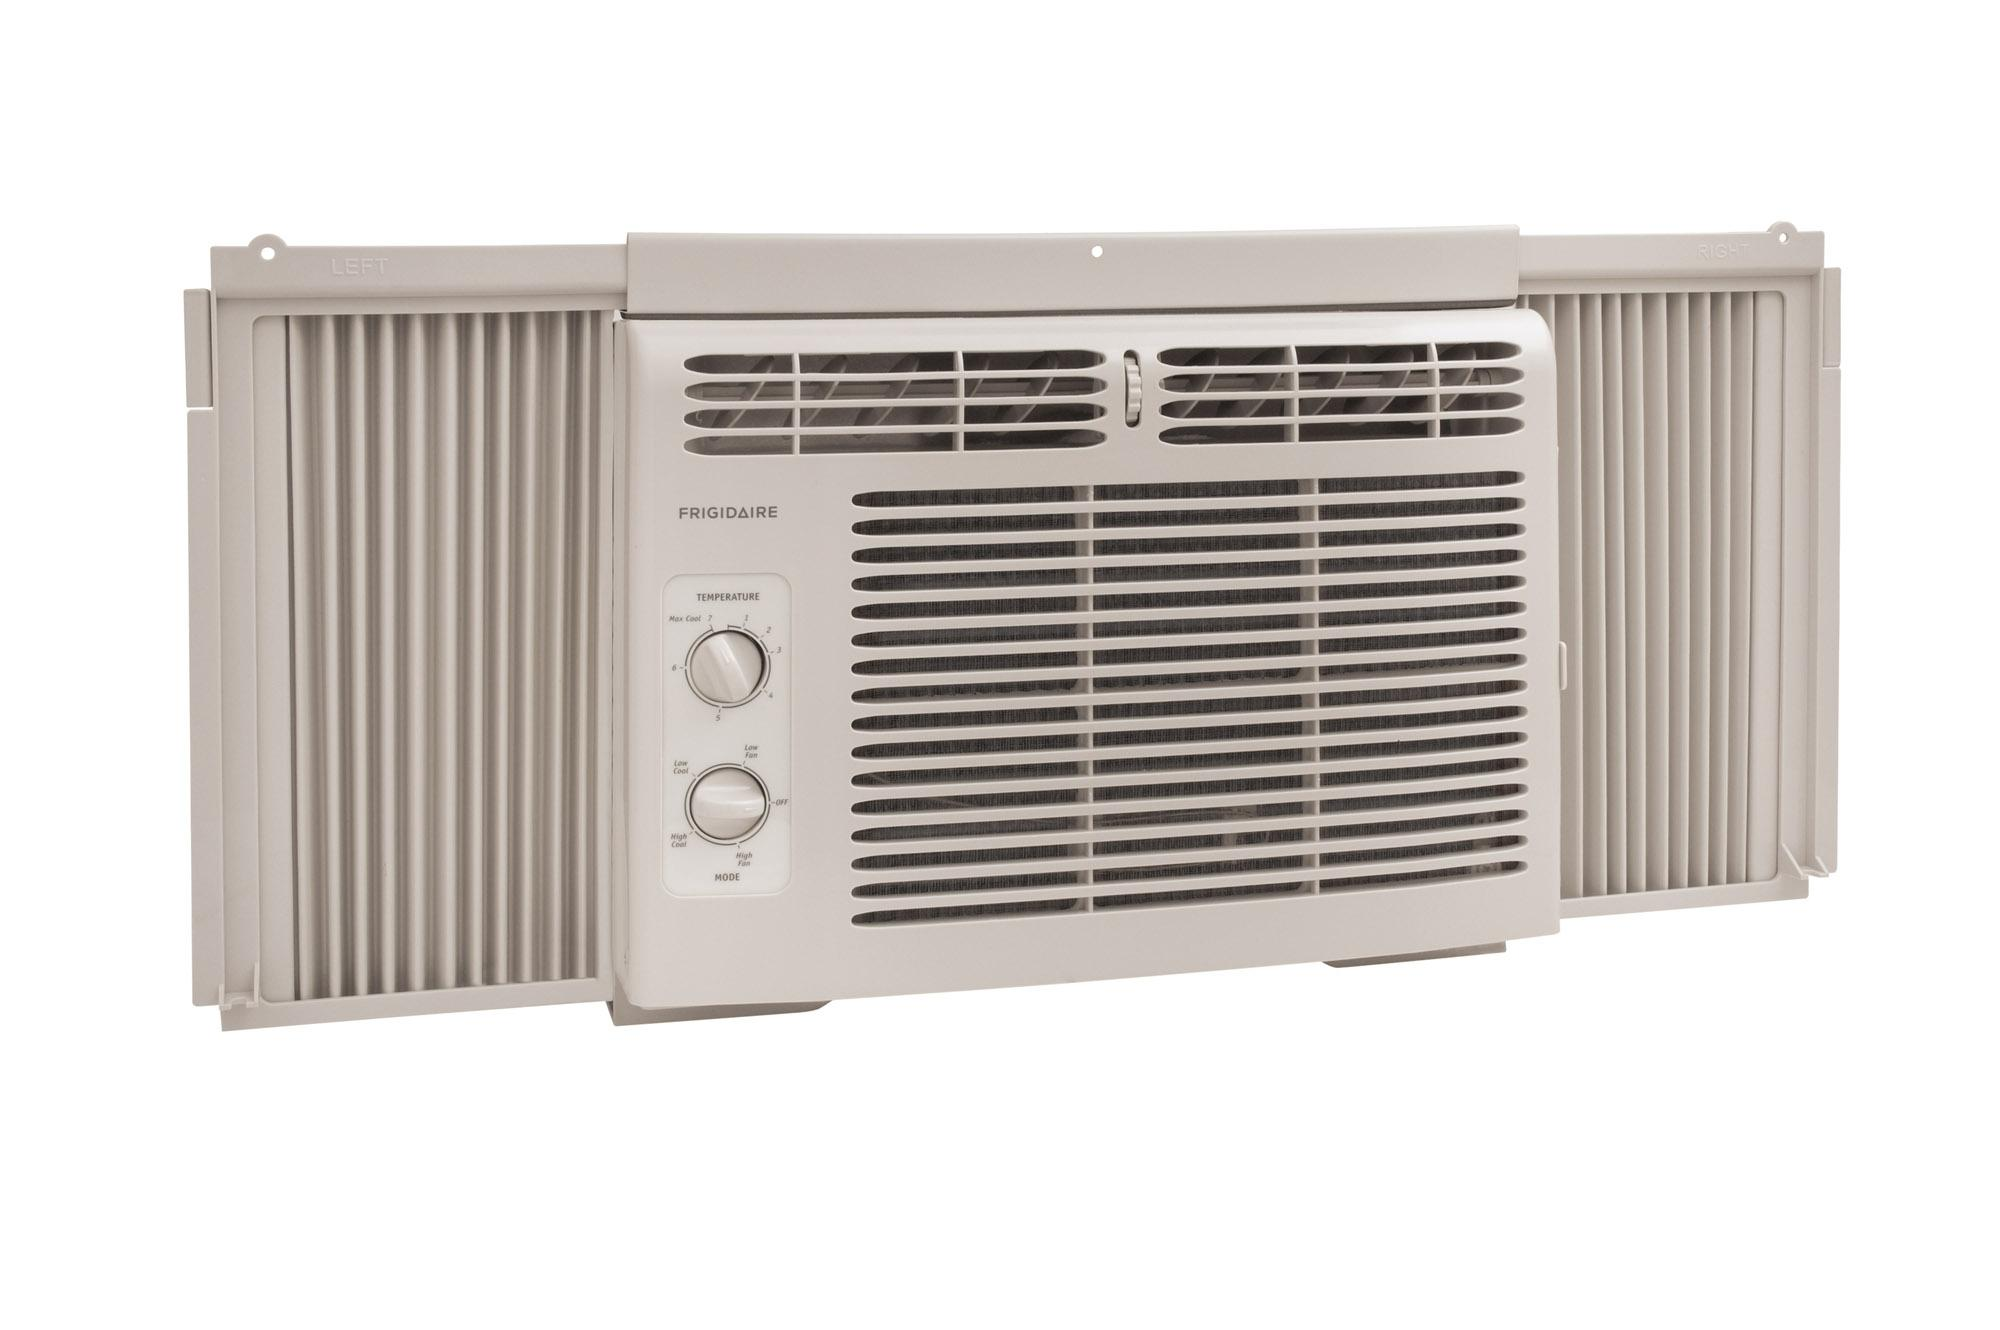 Frigidaire Fra122cv1 12 000 Btu Window Air Conditioner